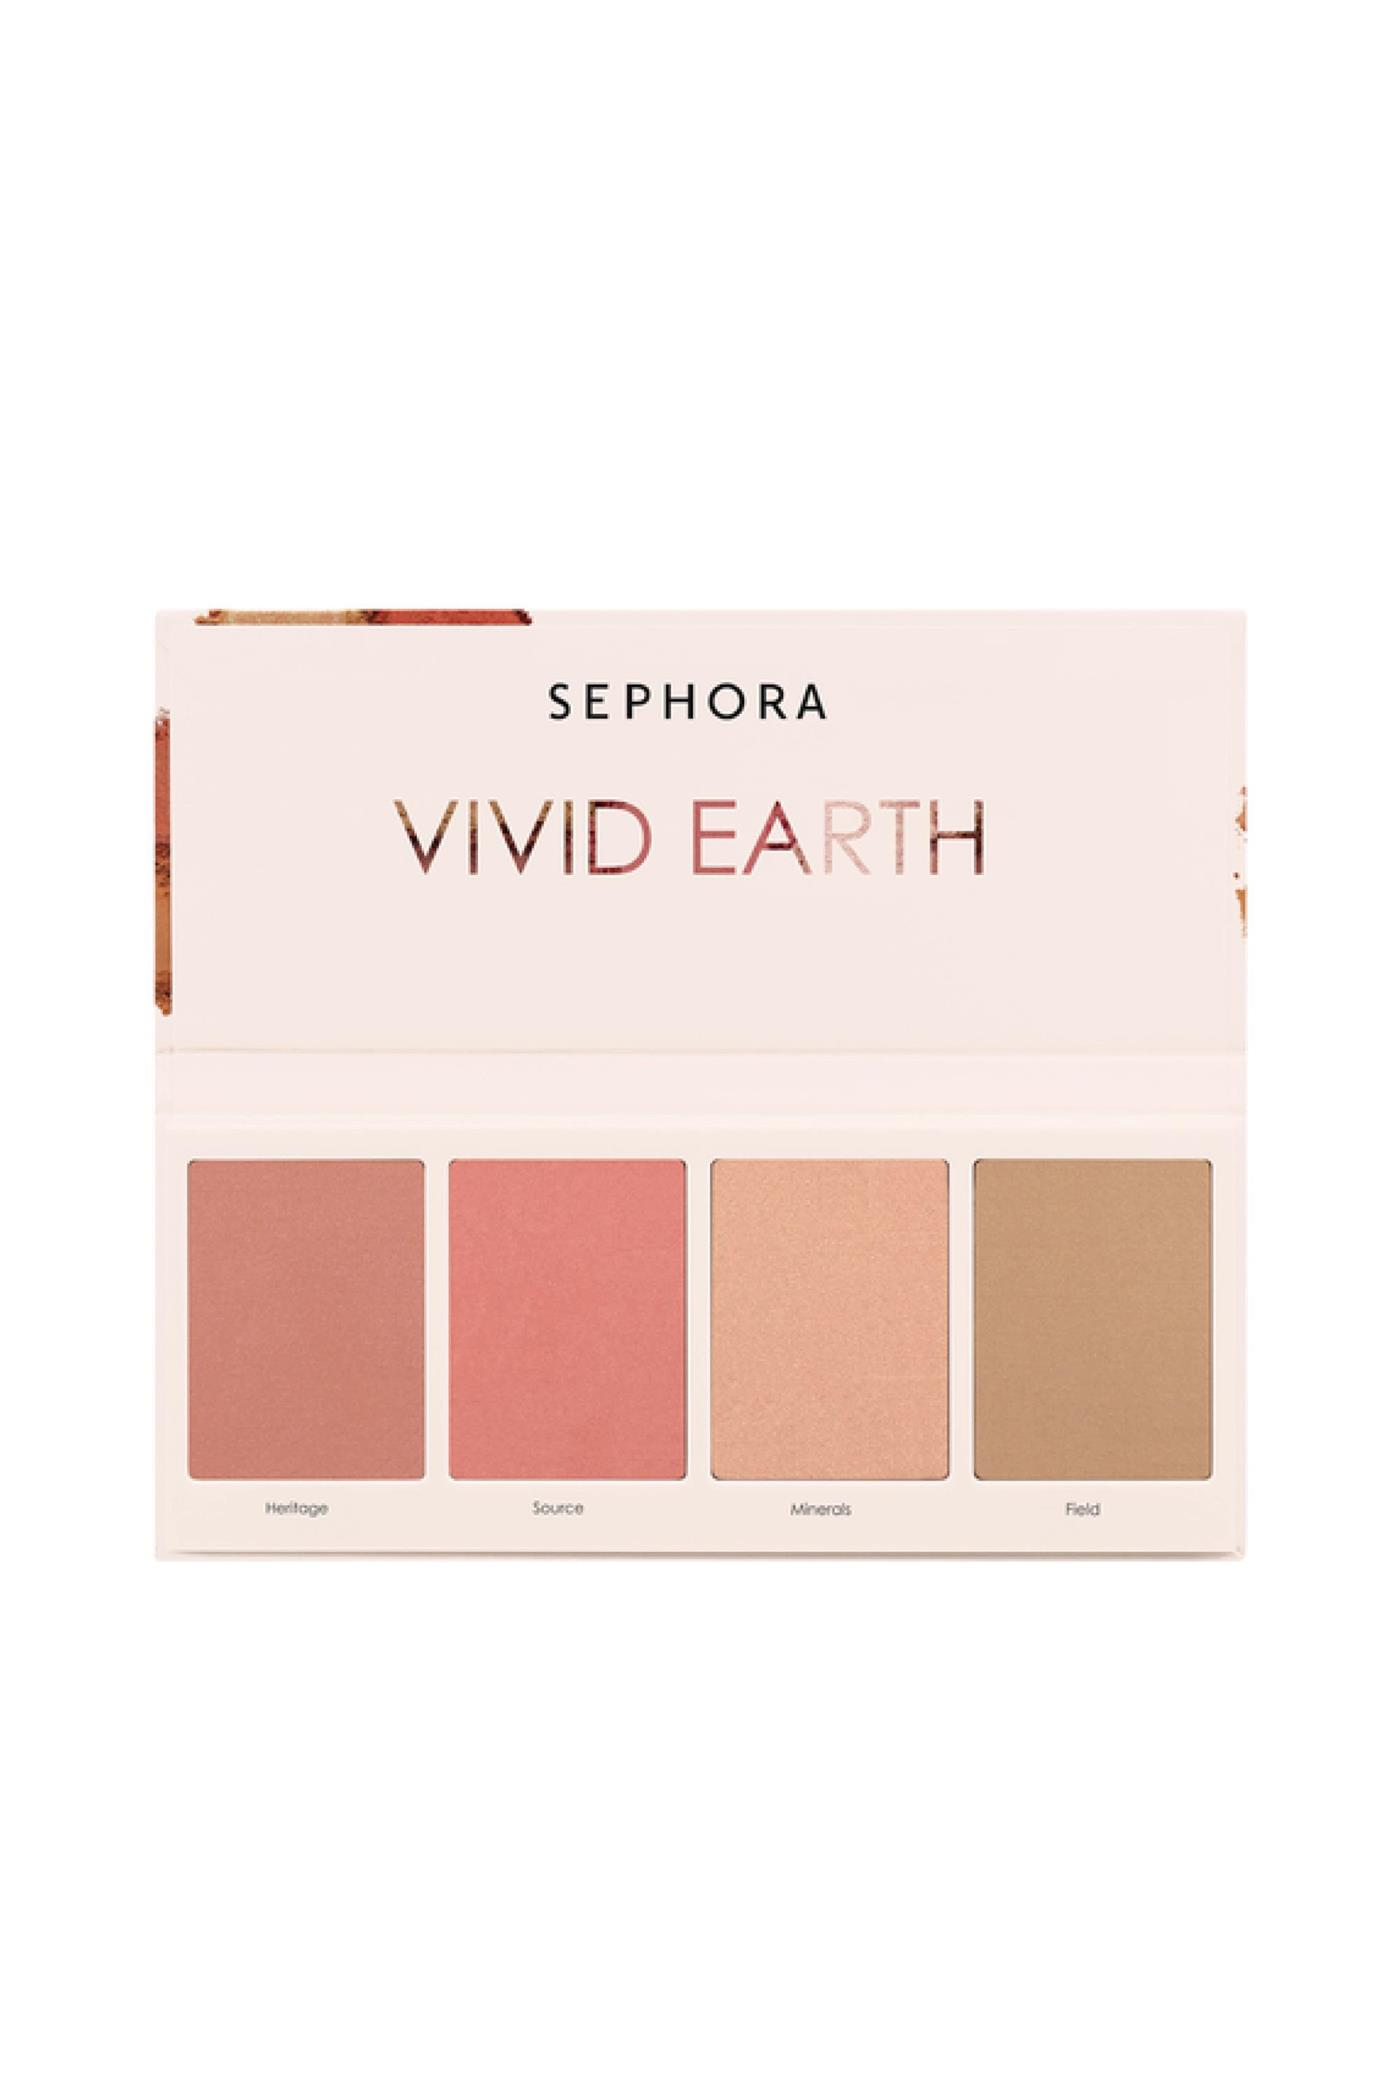 sephora compras. SEPHORA COLLECTION Vivid Earth Paleta facial